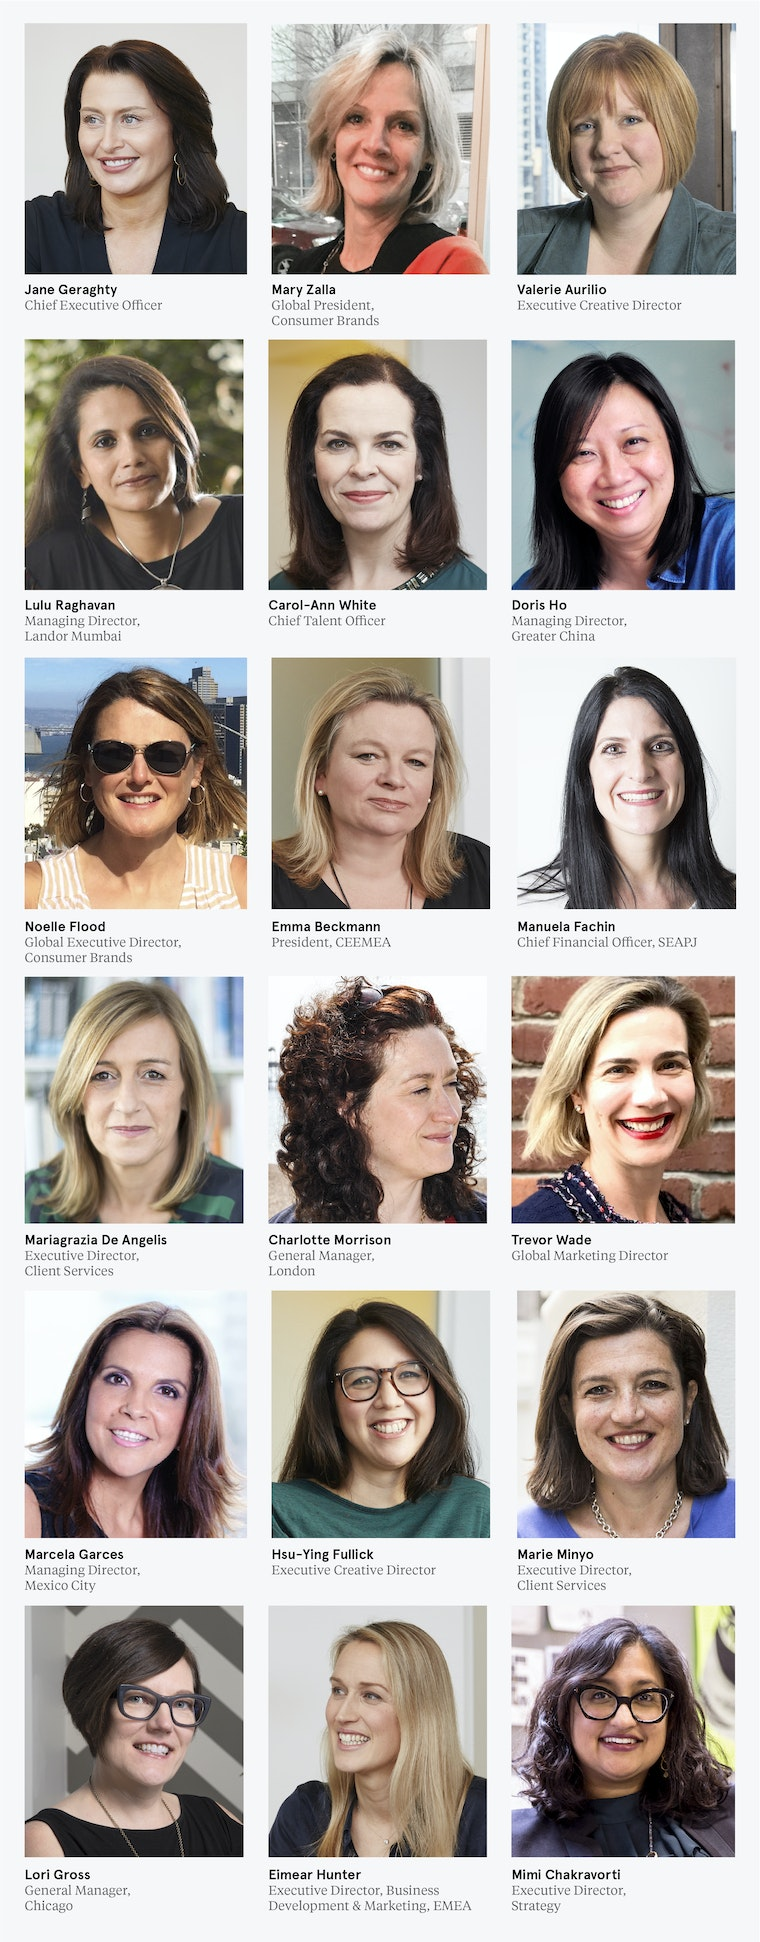 The women leaders of Landor